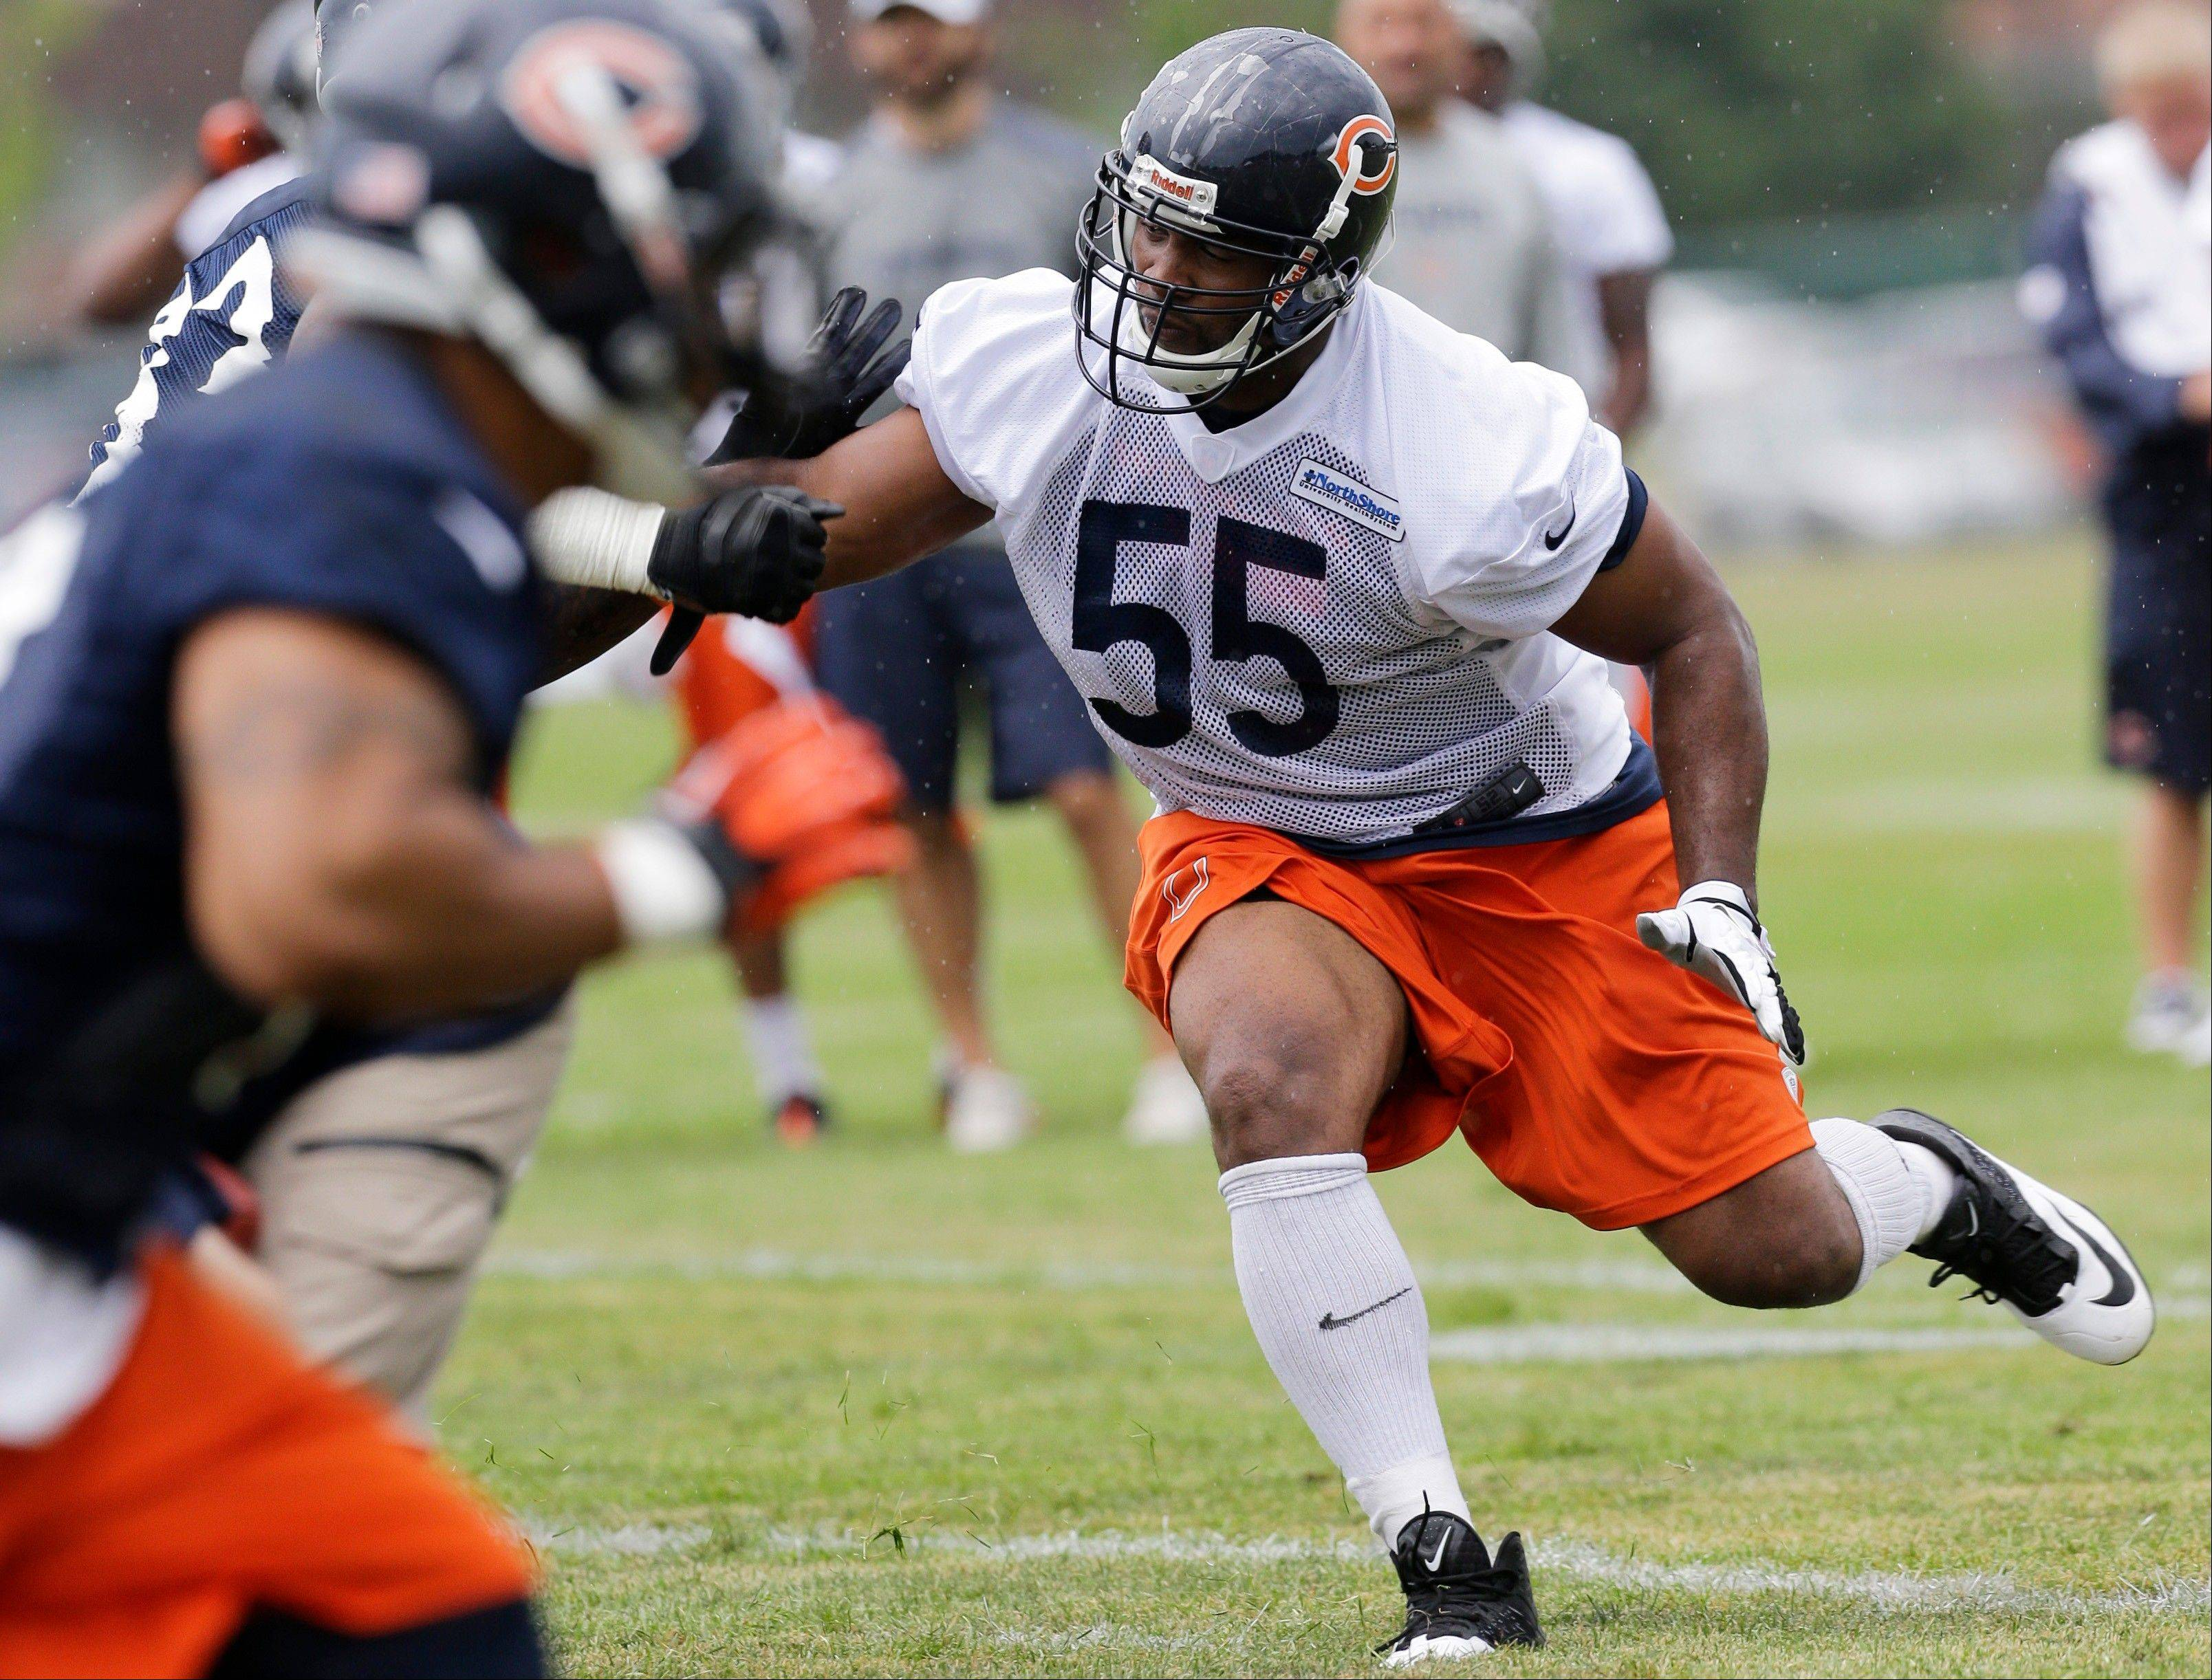 Chicago Bears linebacker Lance Briggs works with teammates.